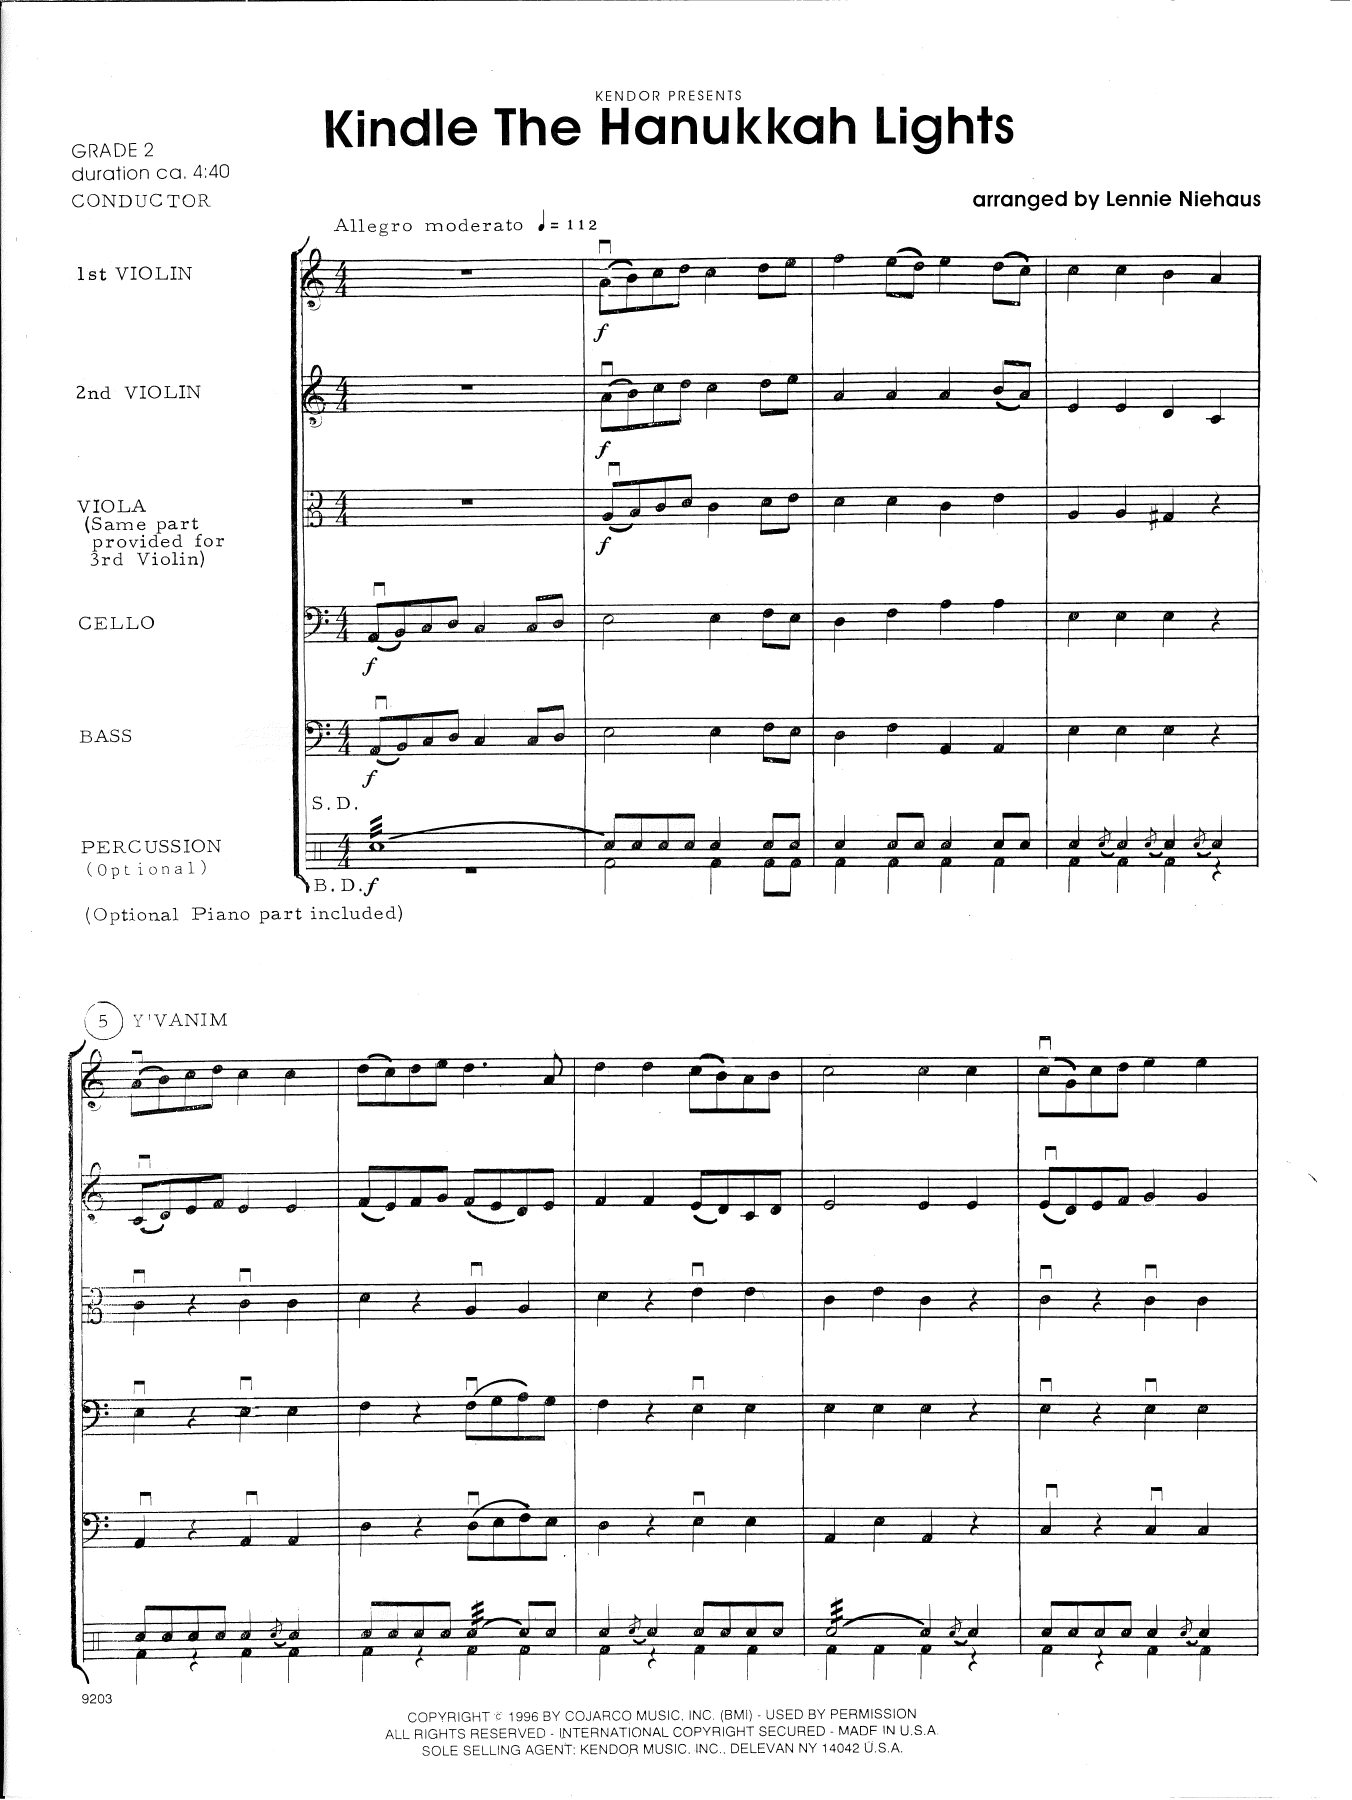 Lennie Niehaus Kindle The Hanukkah Lights - Full Score sheet music notes and chords. Download Printable PDF.